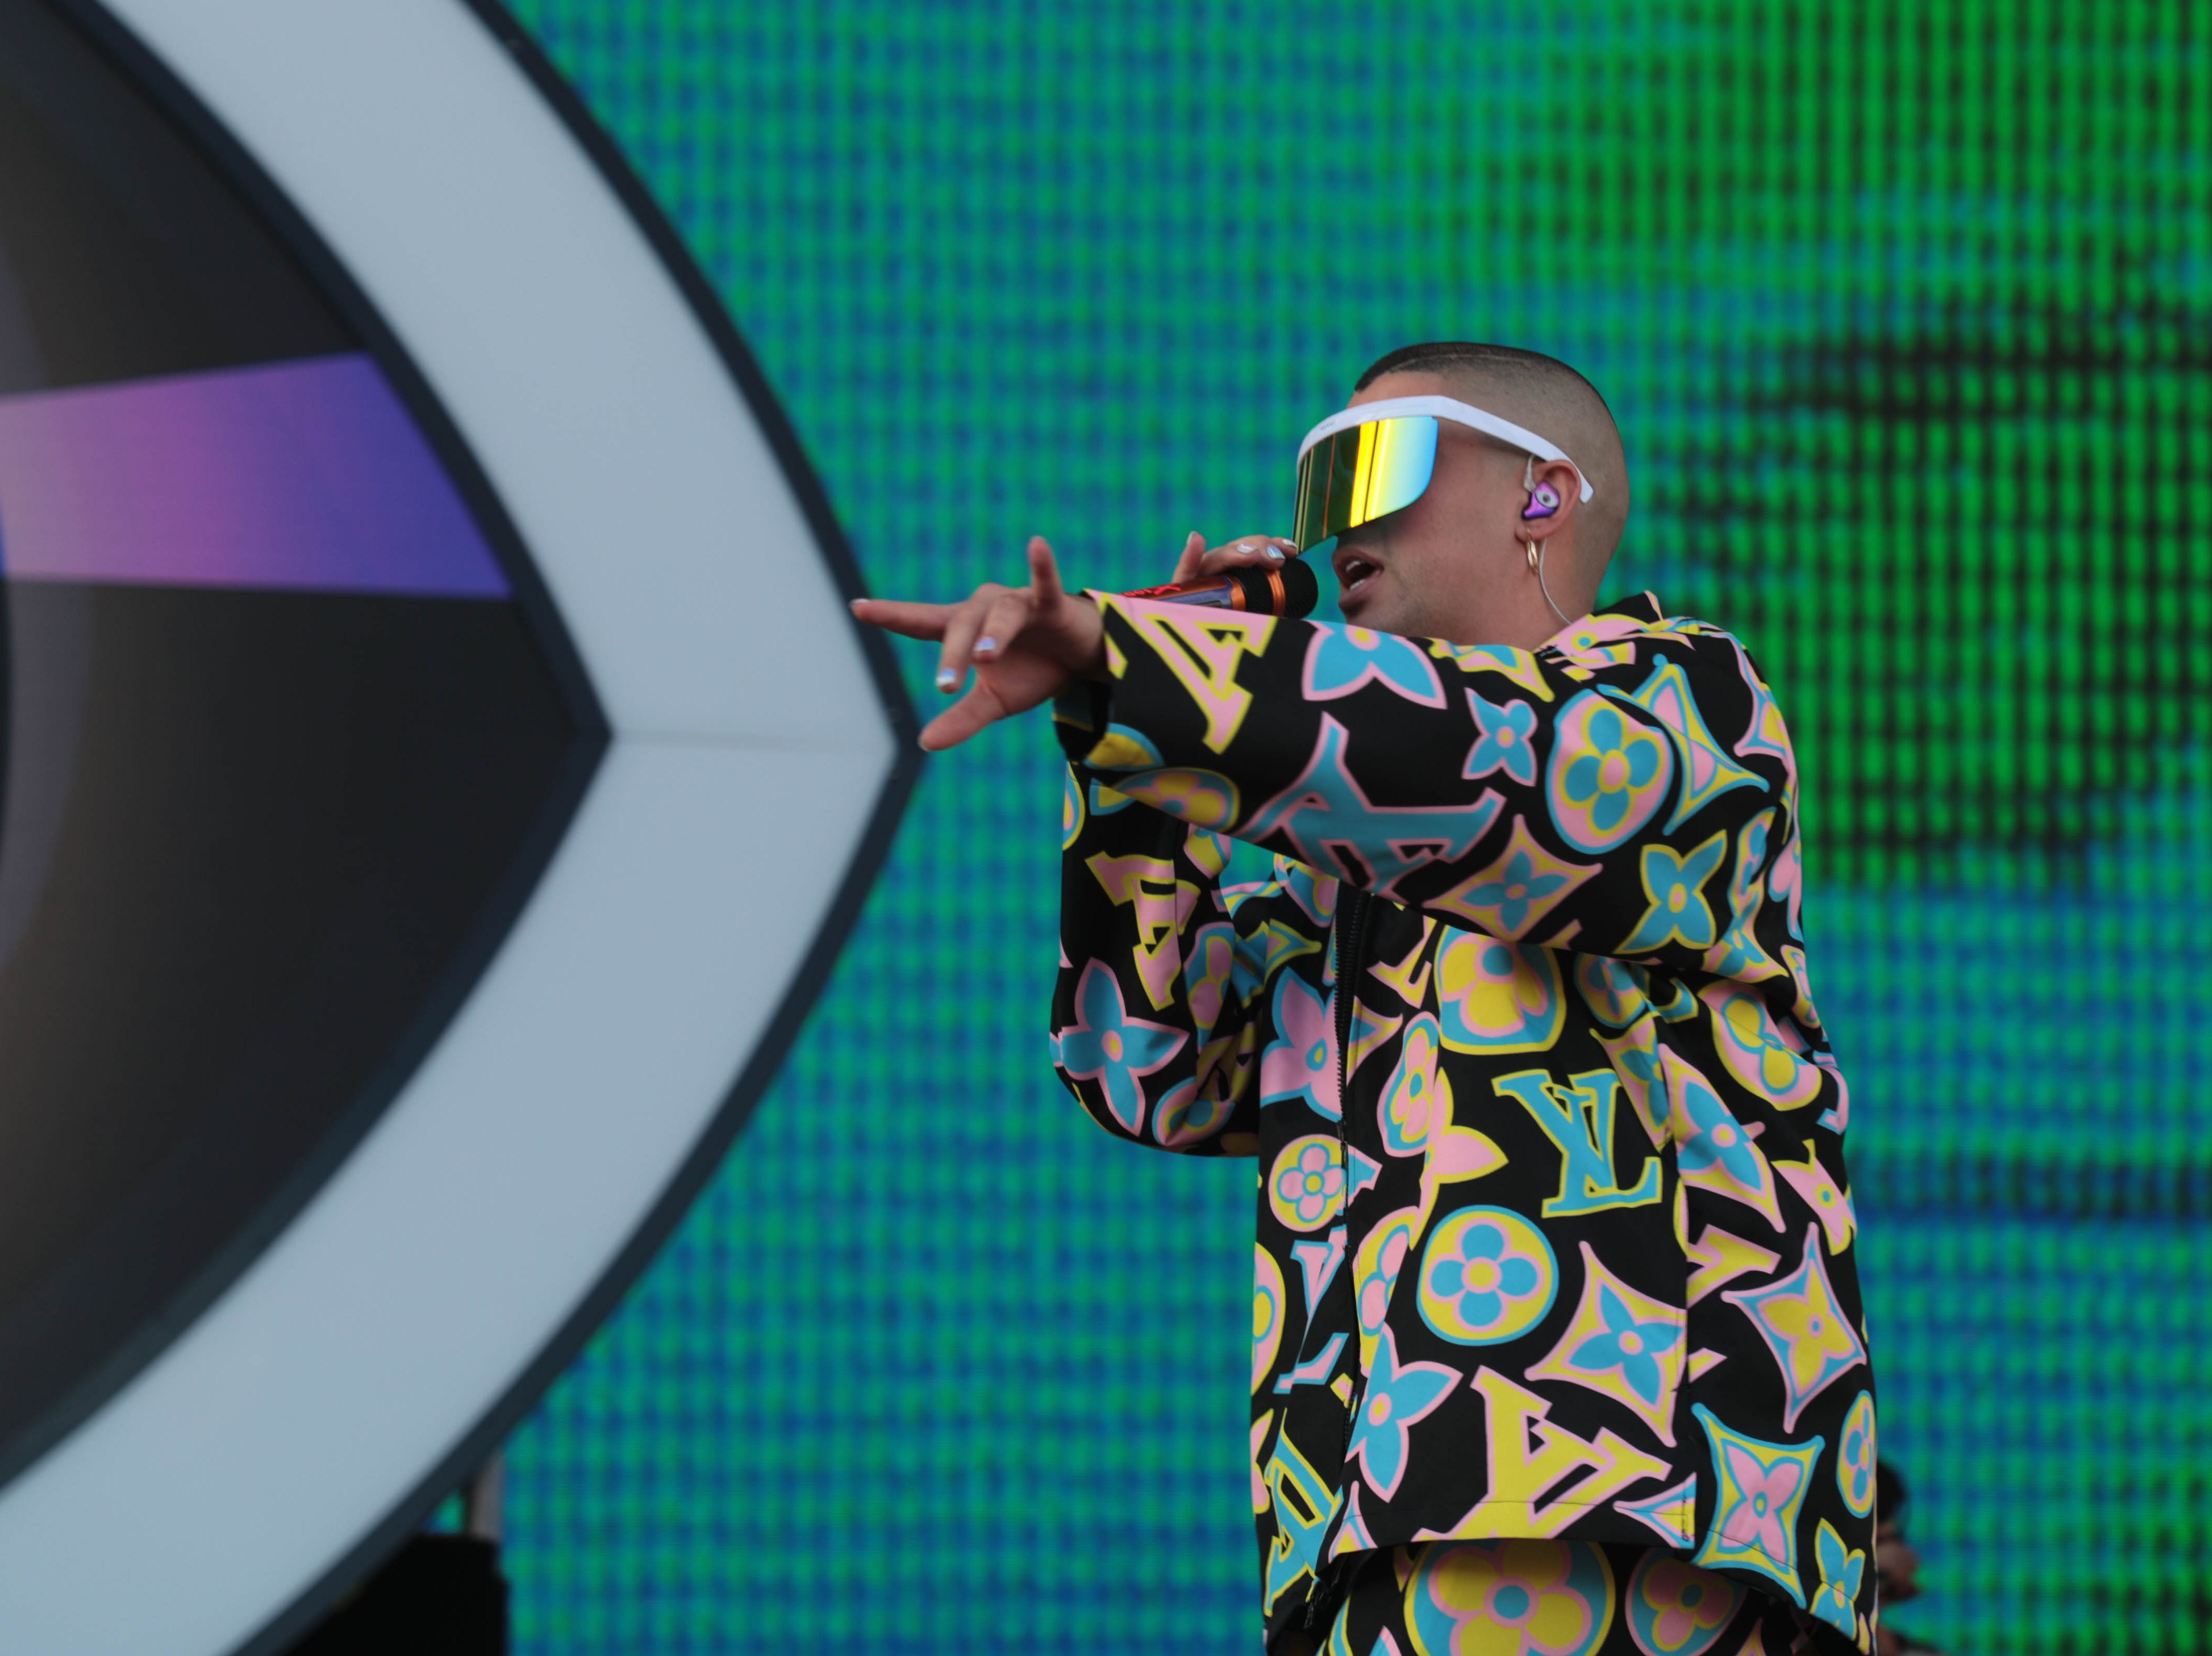 Bad Bunny performs at Coachella Valley Music and Arts Festival on Sunday, April 14, 2019 in Indio, Calif.